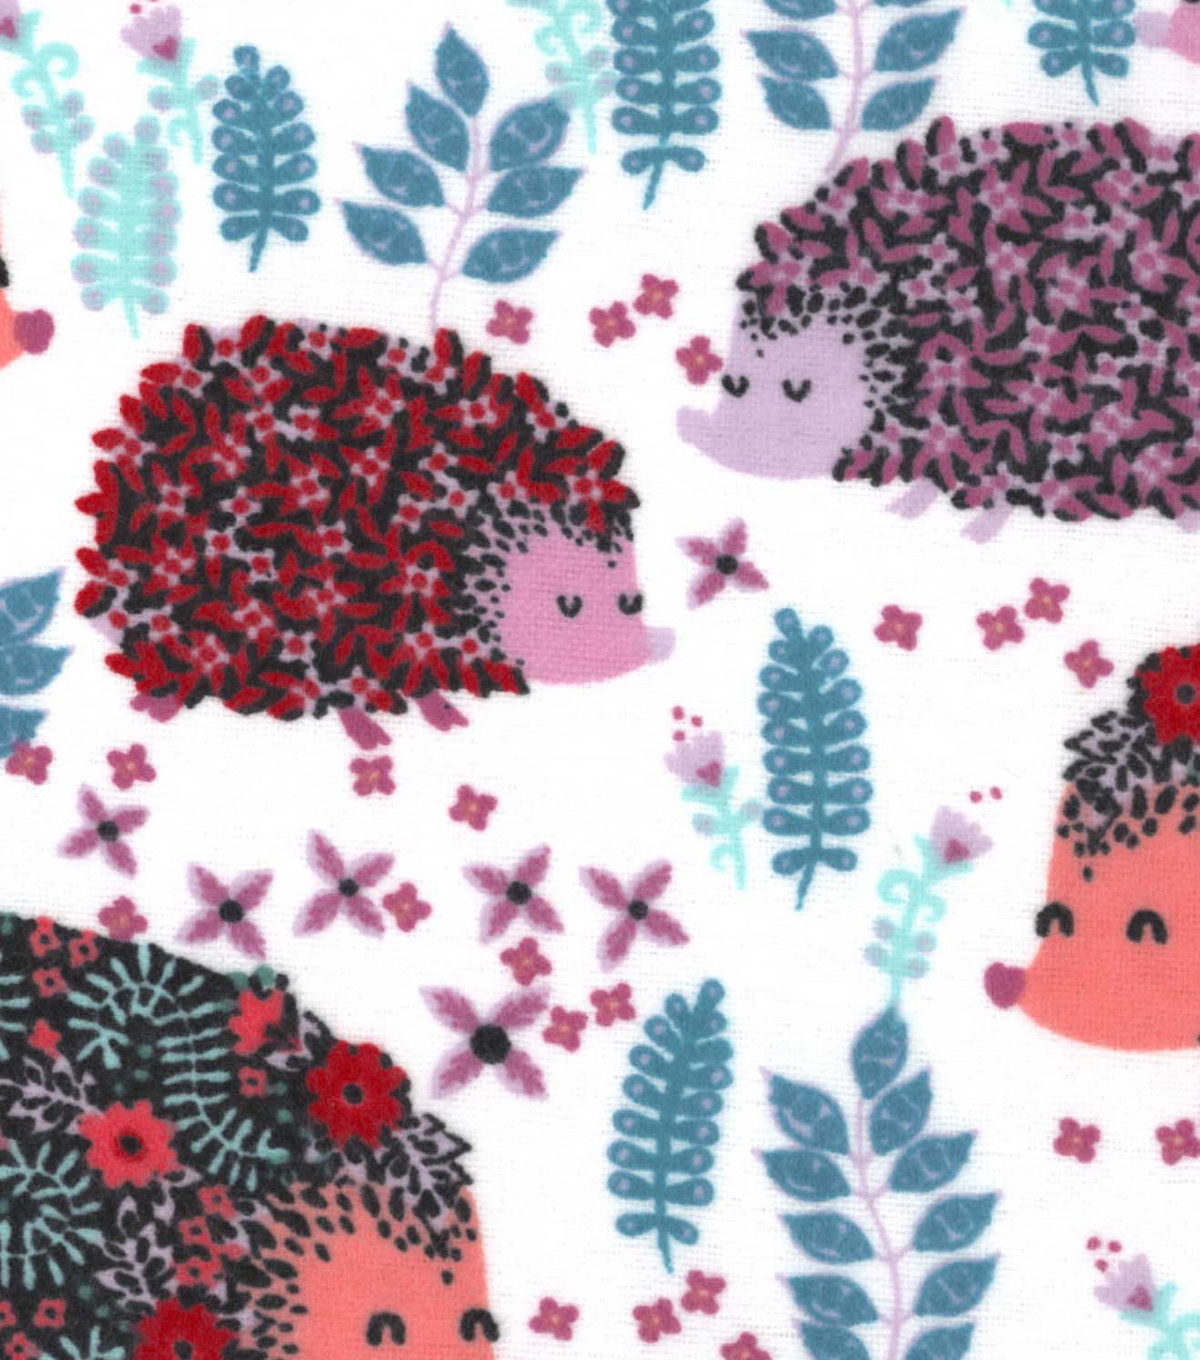 Snuggle Flannel Fabric -Floral Pattered Hedgehogs